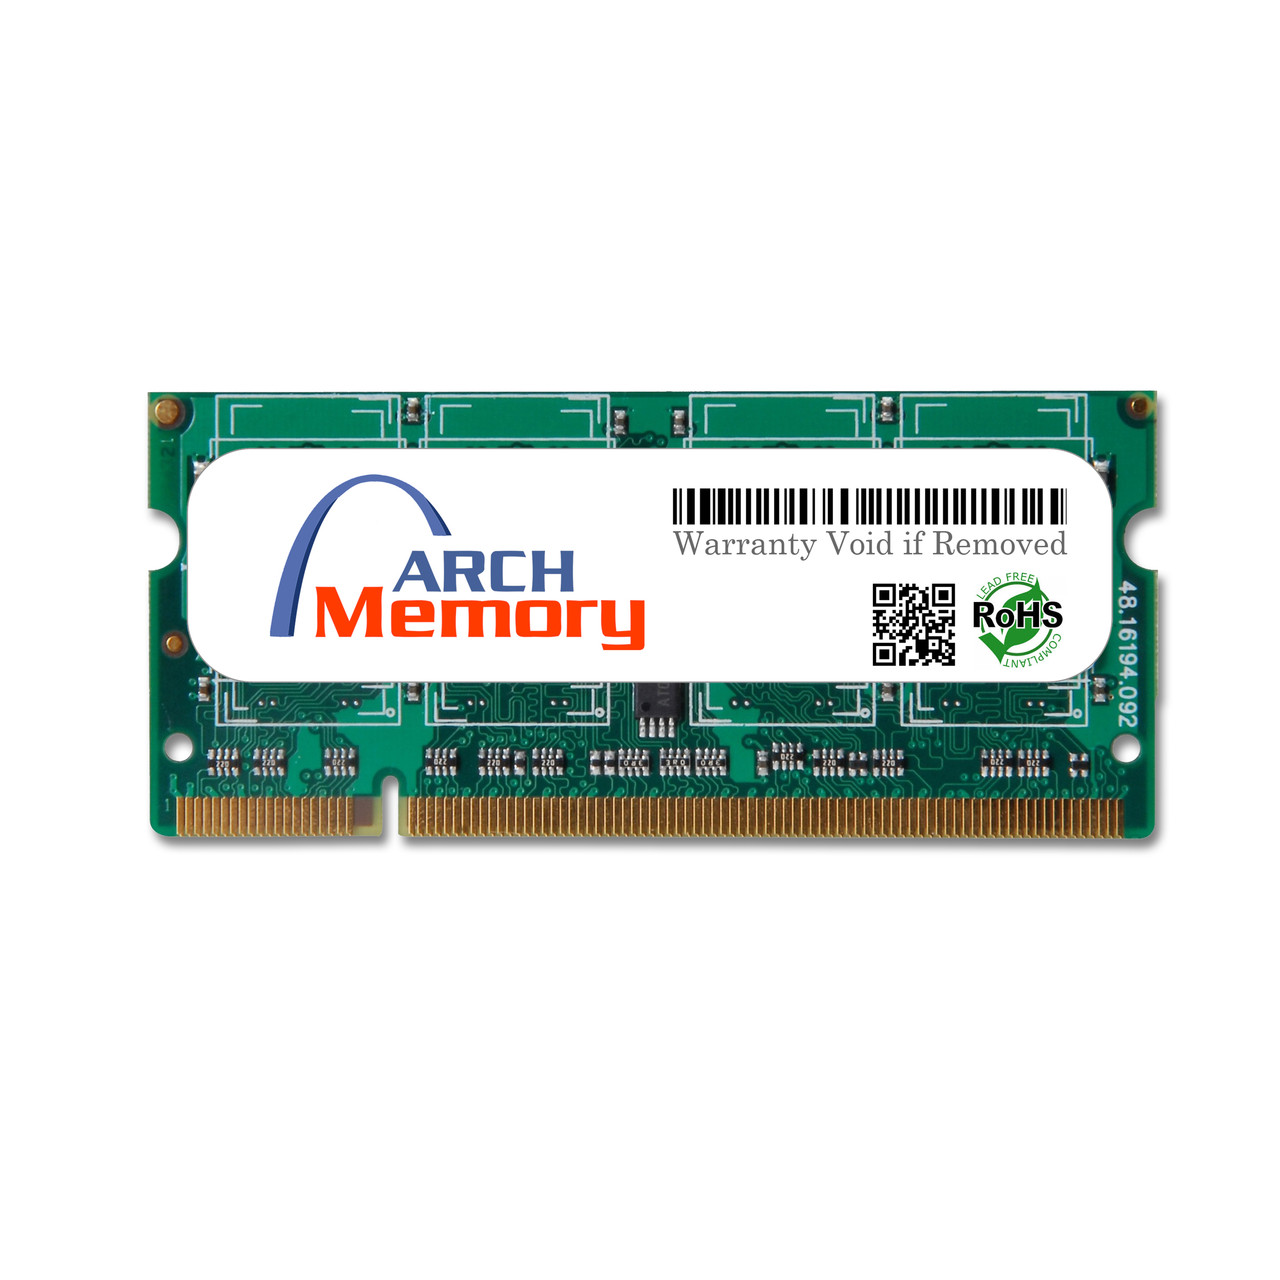 1GB 200-Pin DDR-266 PC2100 Sodimm (2Rx8) RAM | Arch Memory